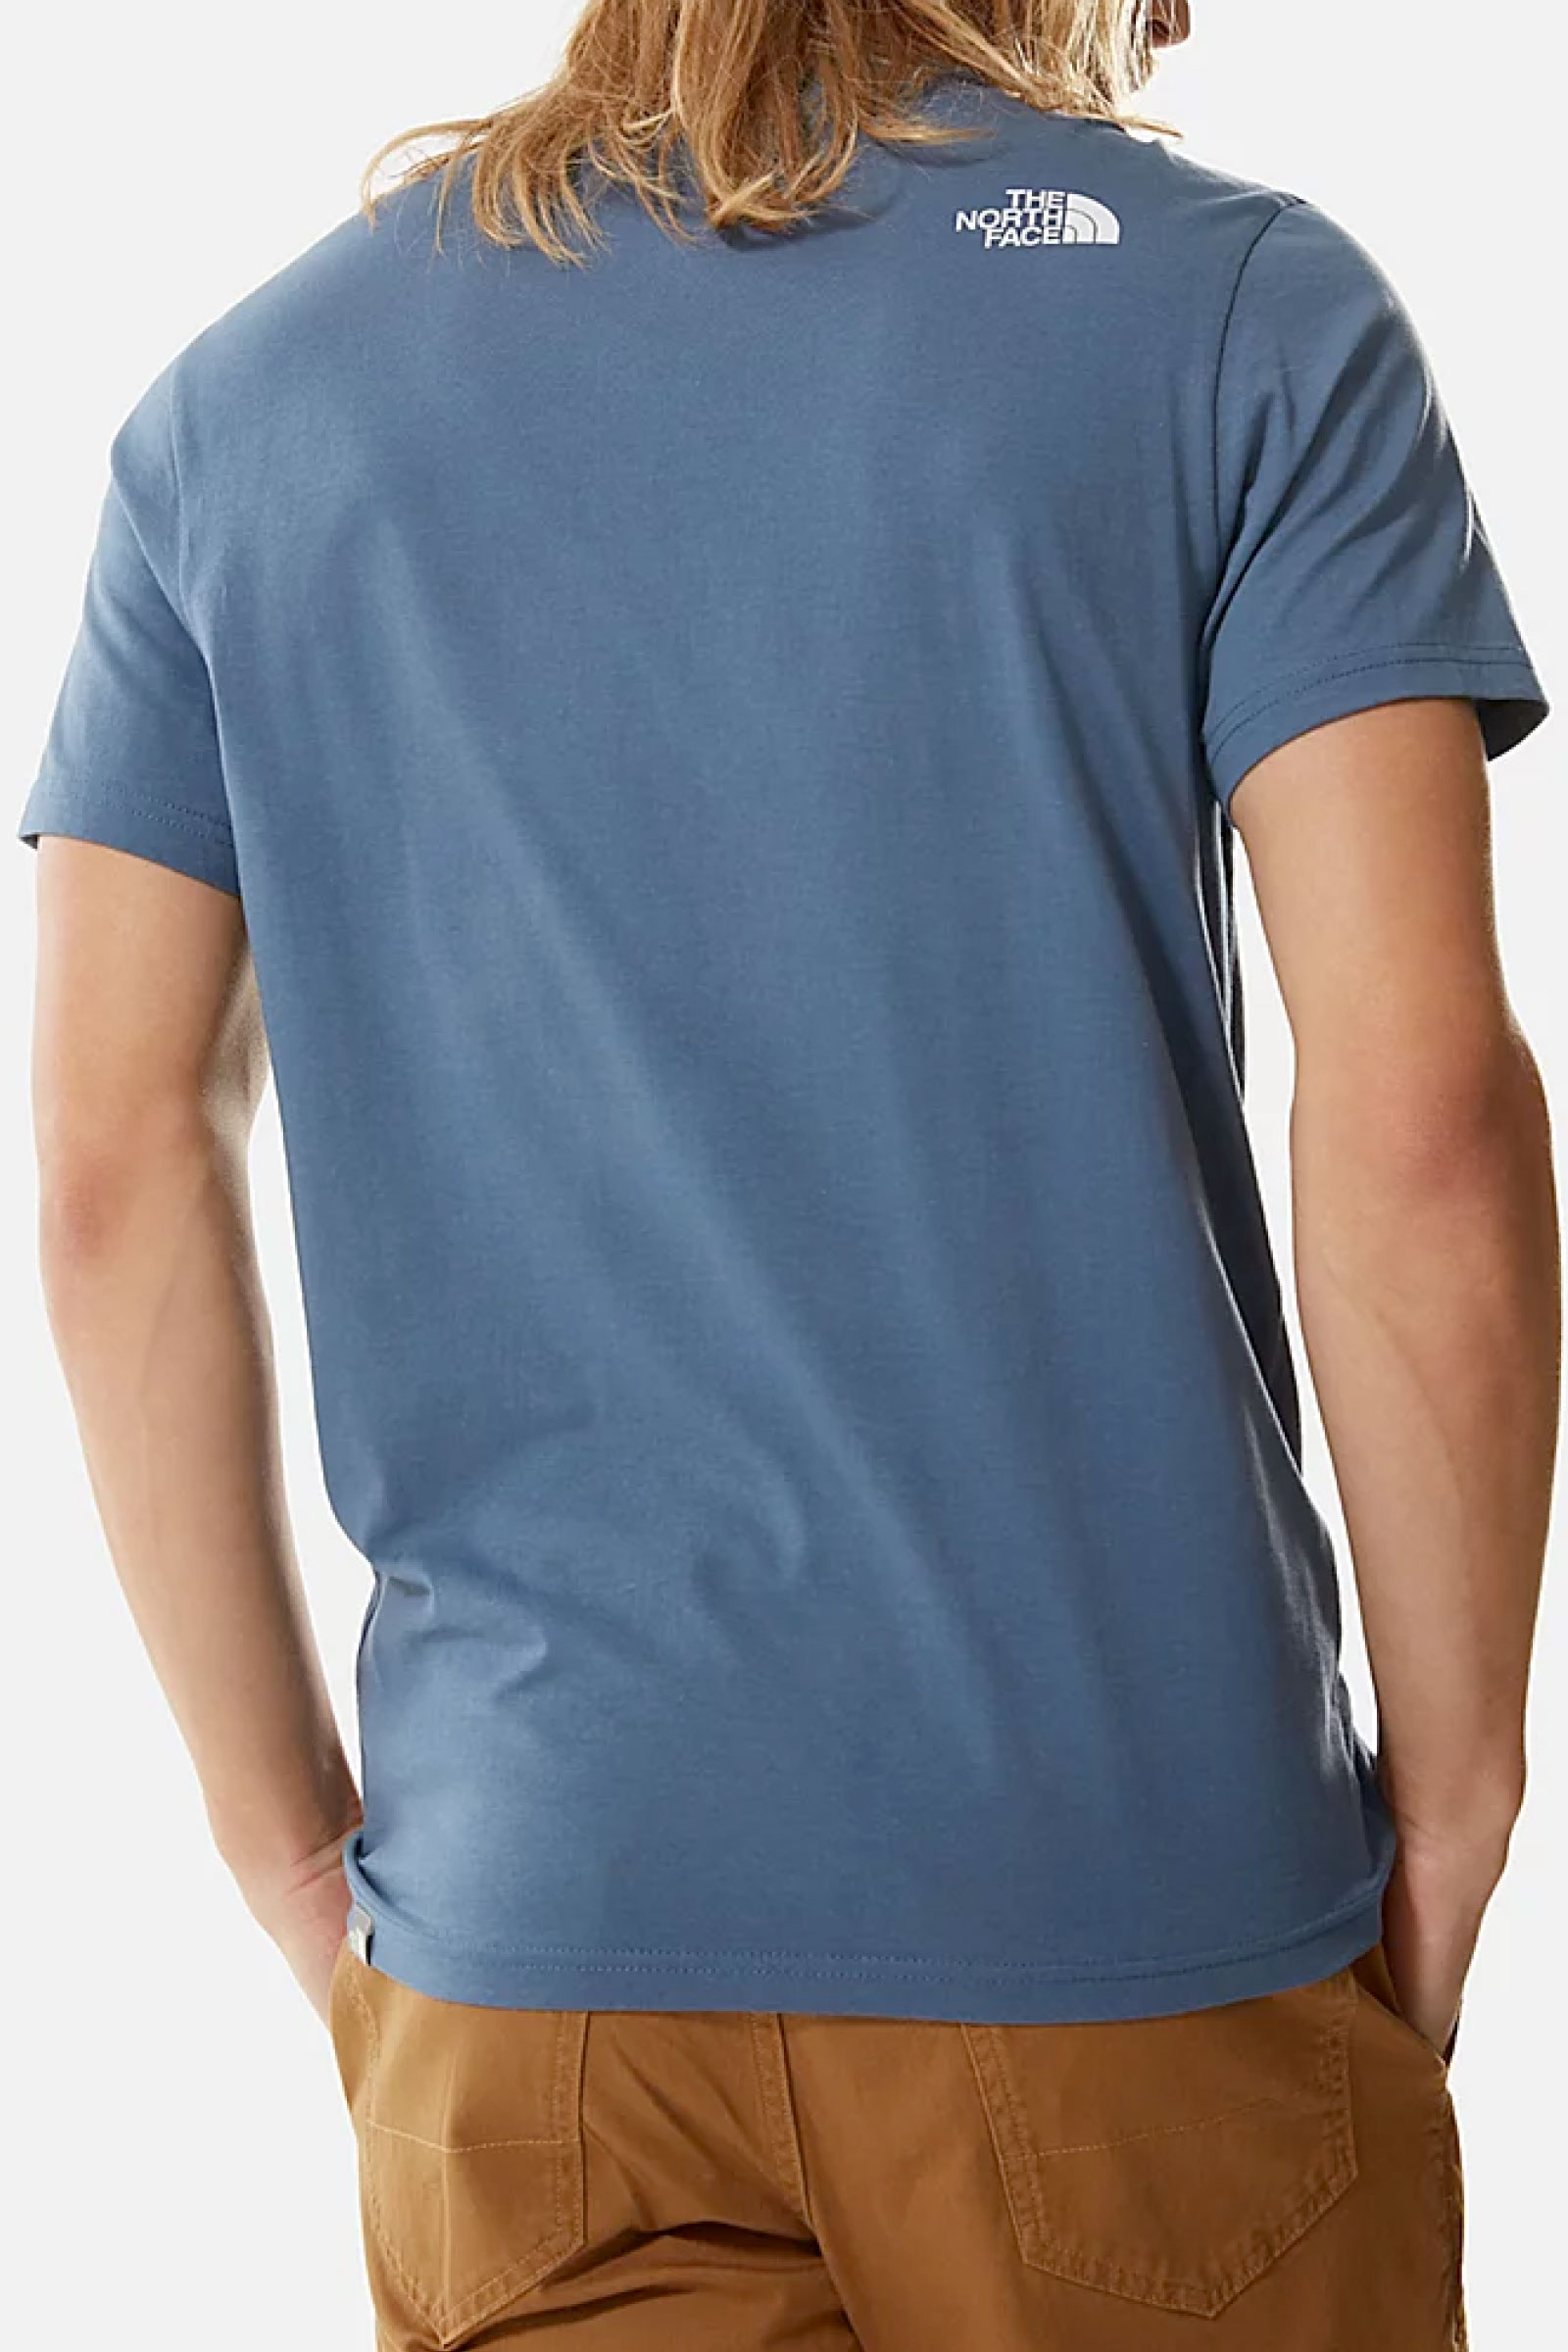 THE NORTH FACE | T-Shirt | NF0A2TX5WC41